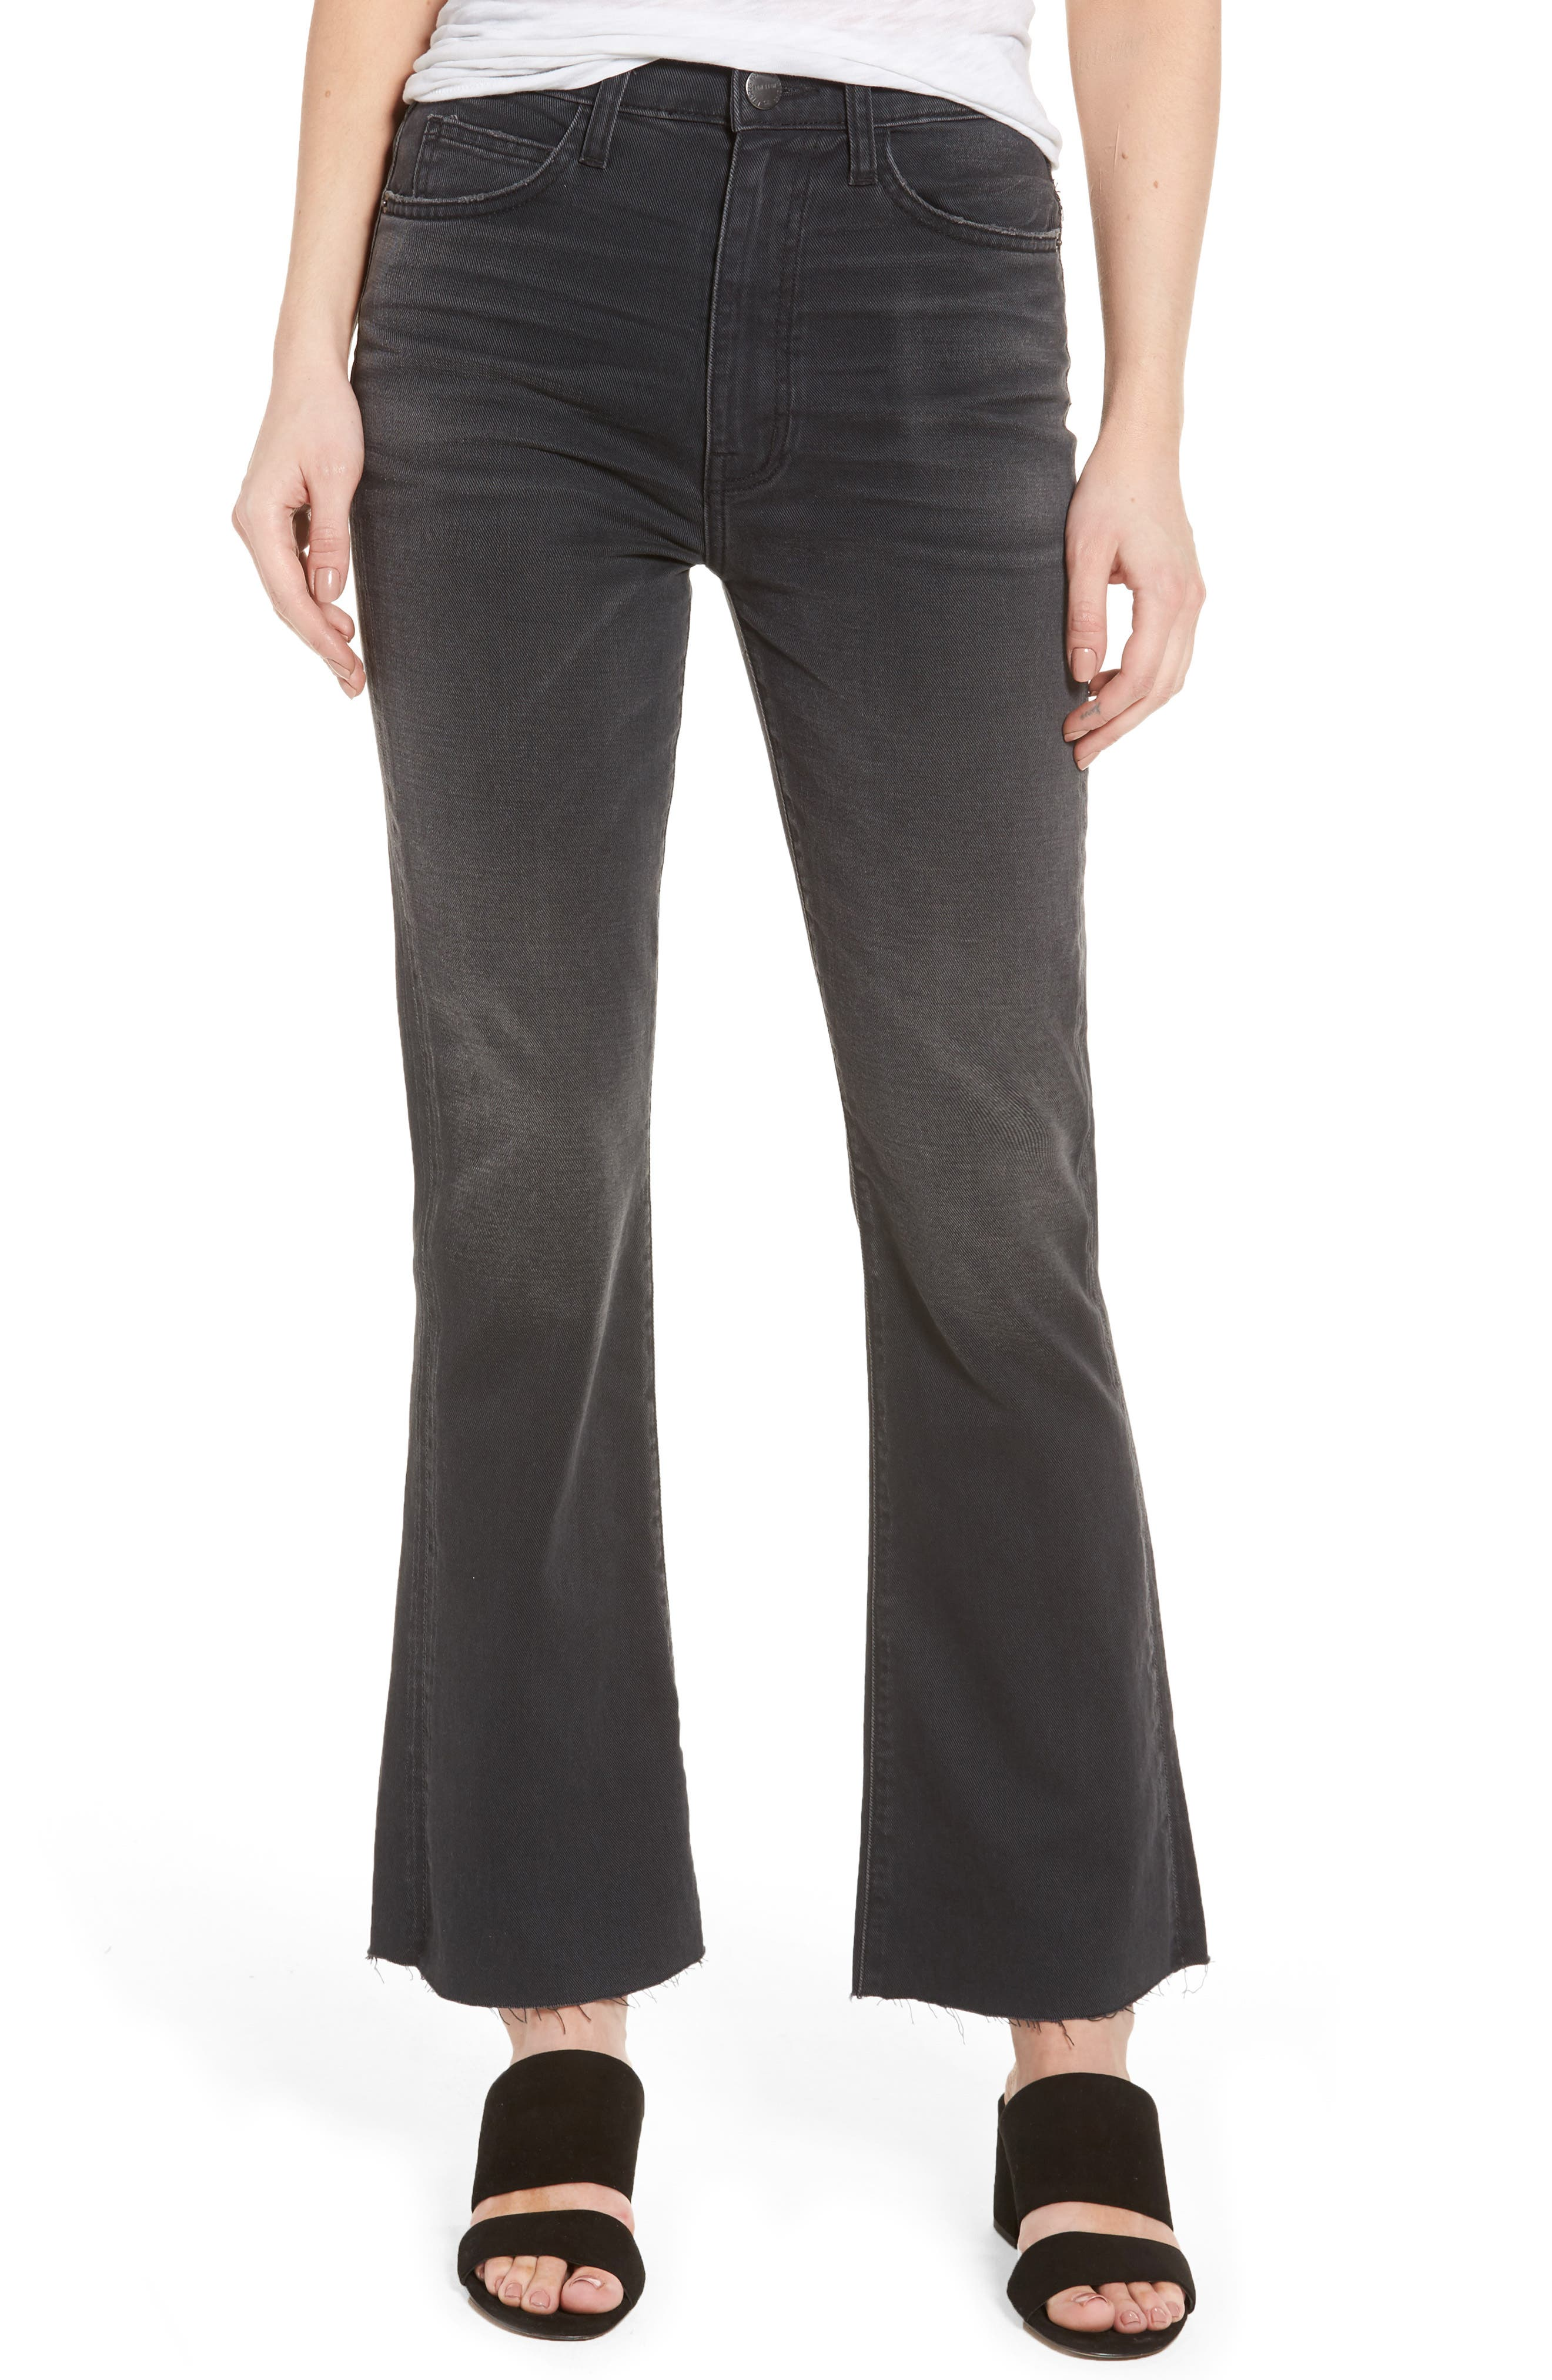 Main Image - Current/Elliott The Kick High Waist Crop Flare Jeans (Edgebrook)